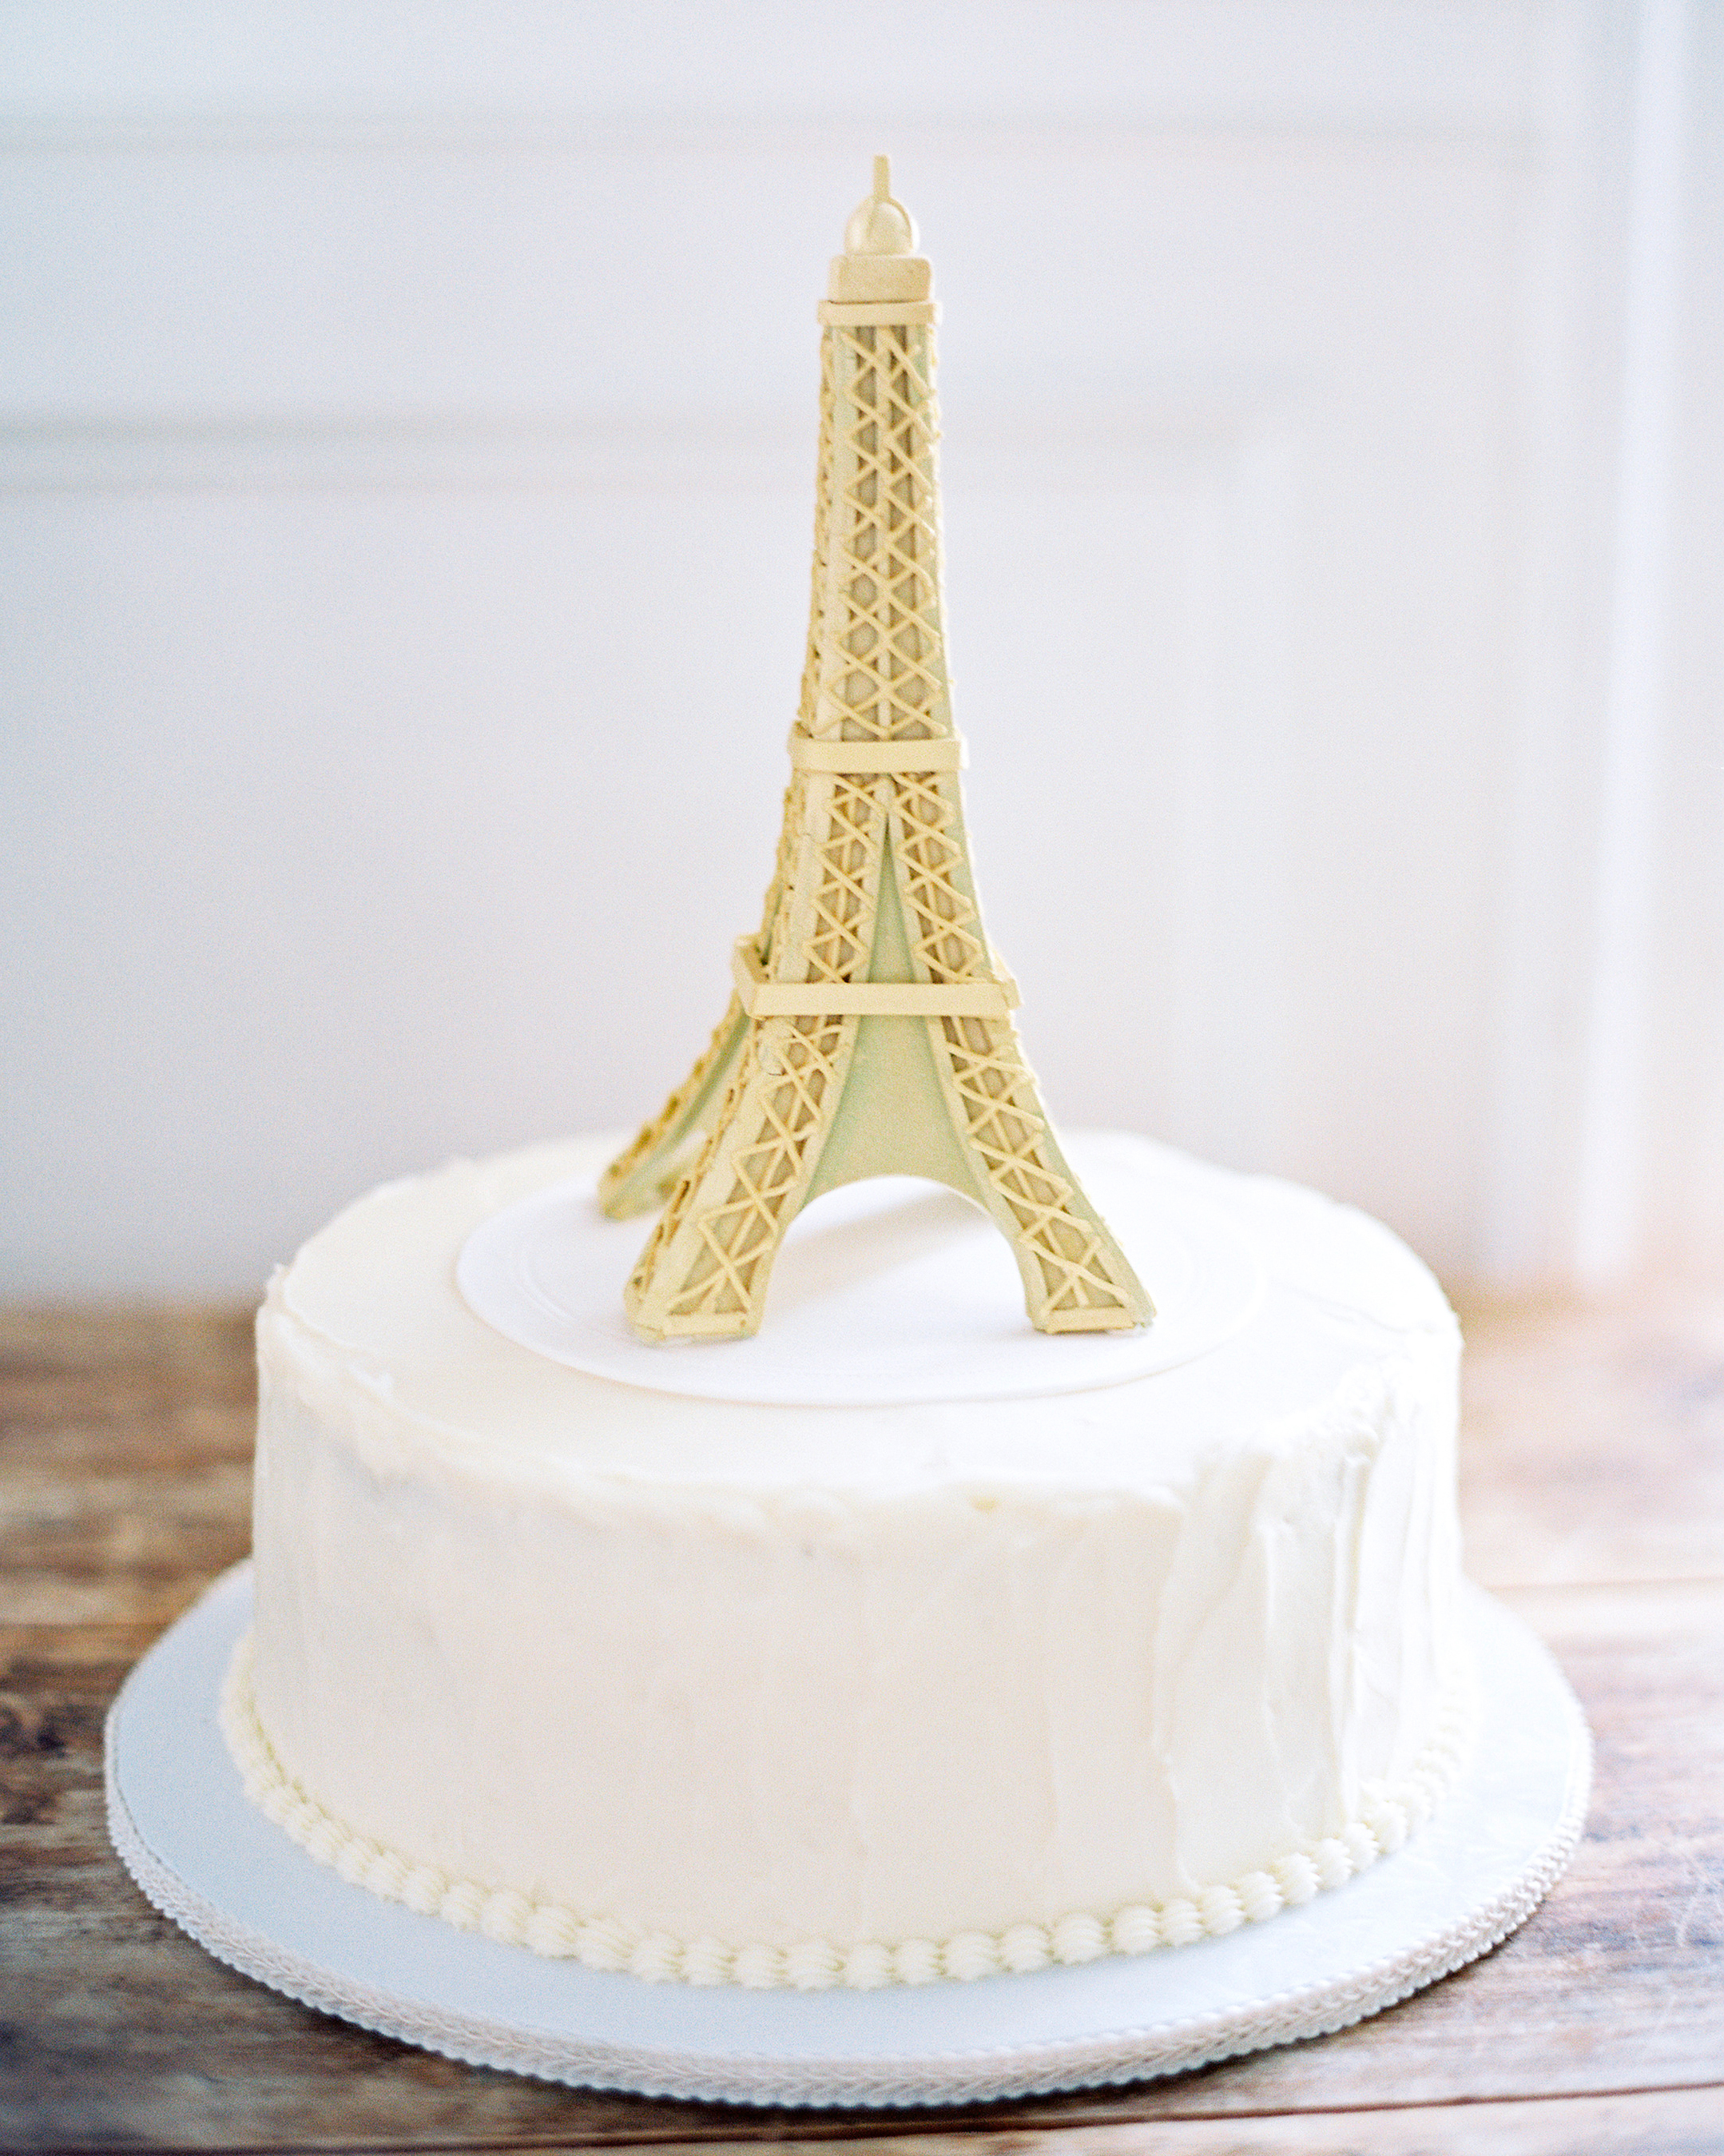 Eiffel Tower Groom's Cake